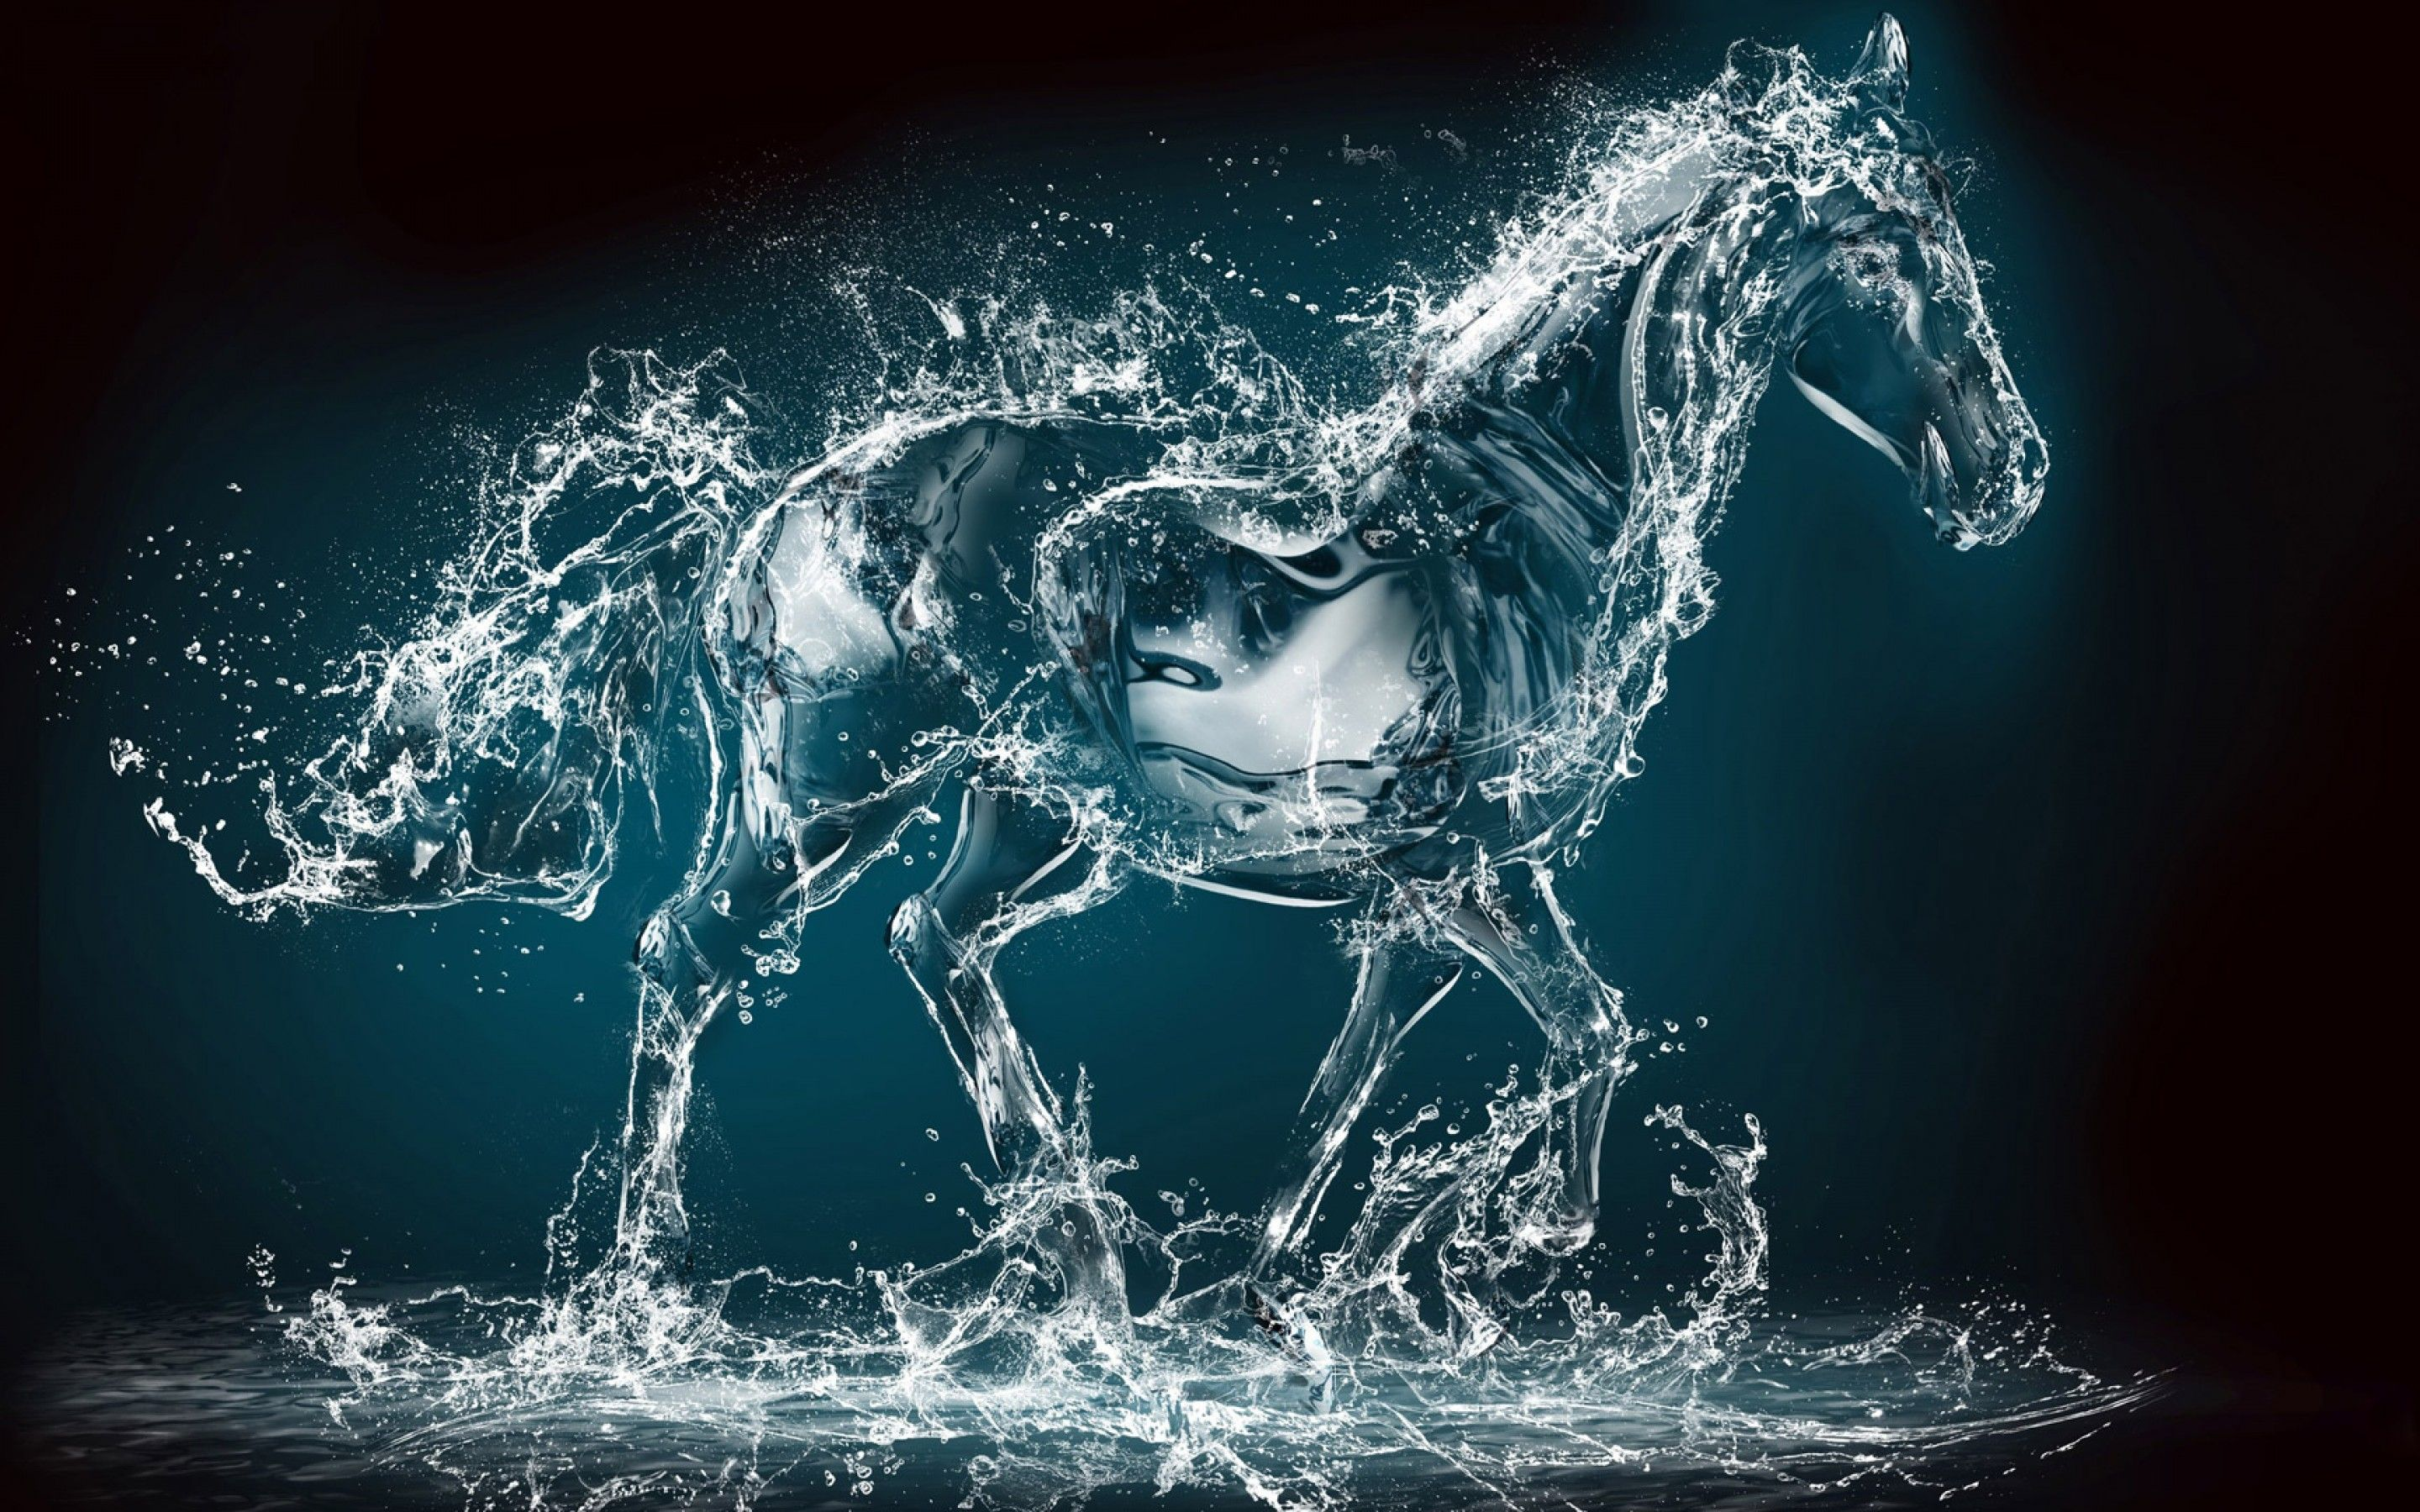 Water Art 3d Horse Hd Wallpaper Water Art Horse Wallpaper Art Wallpaper